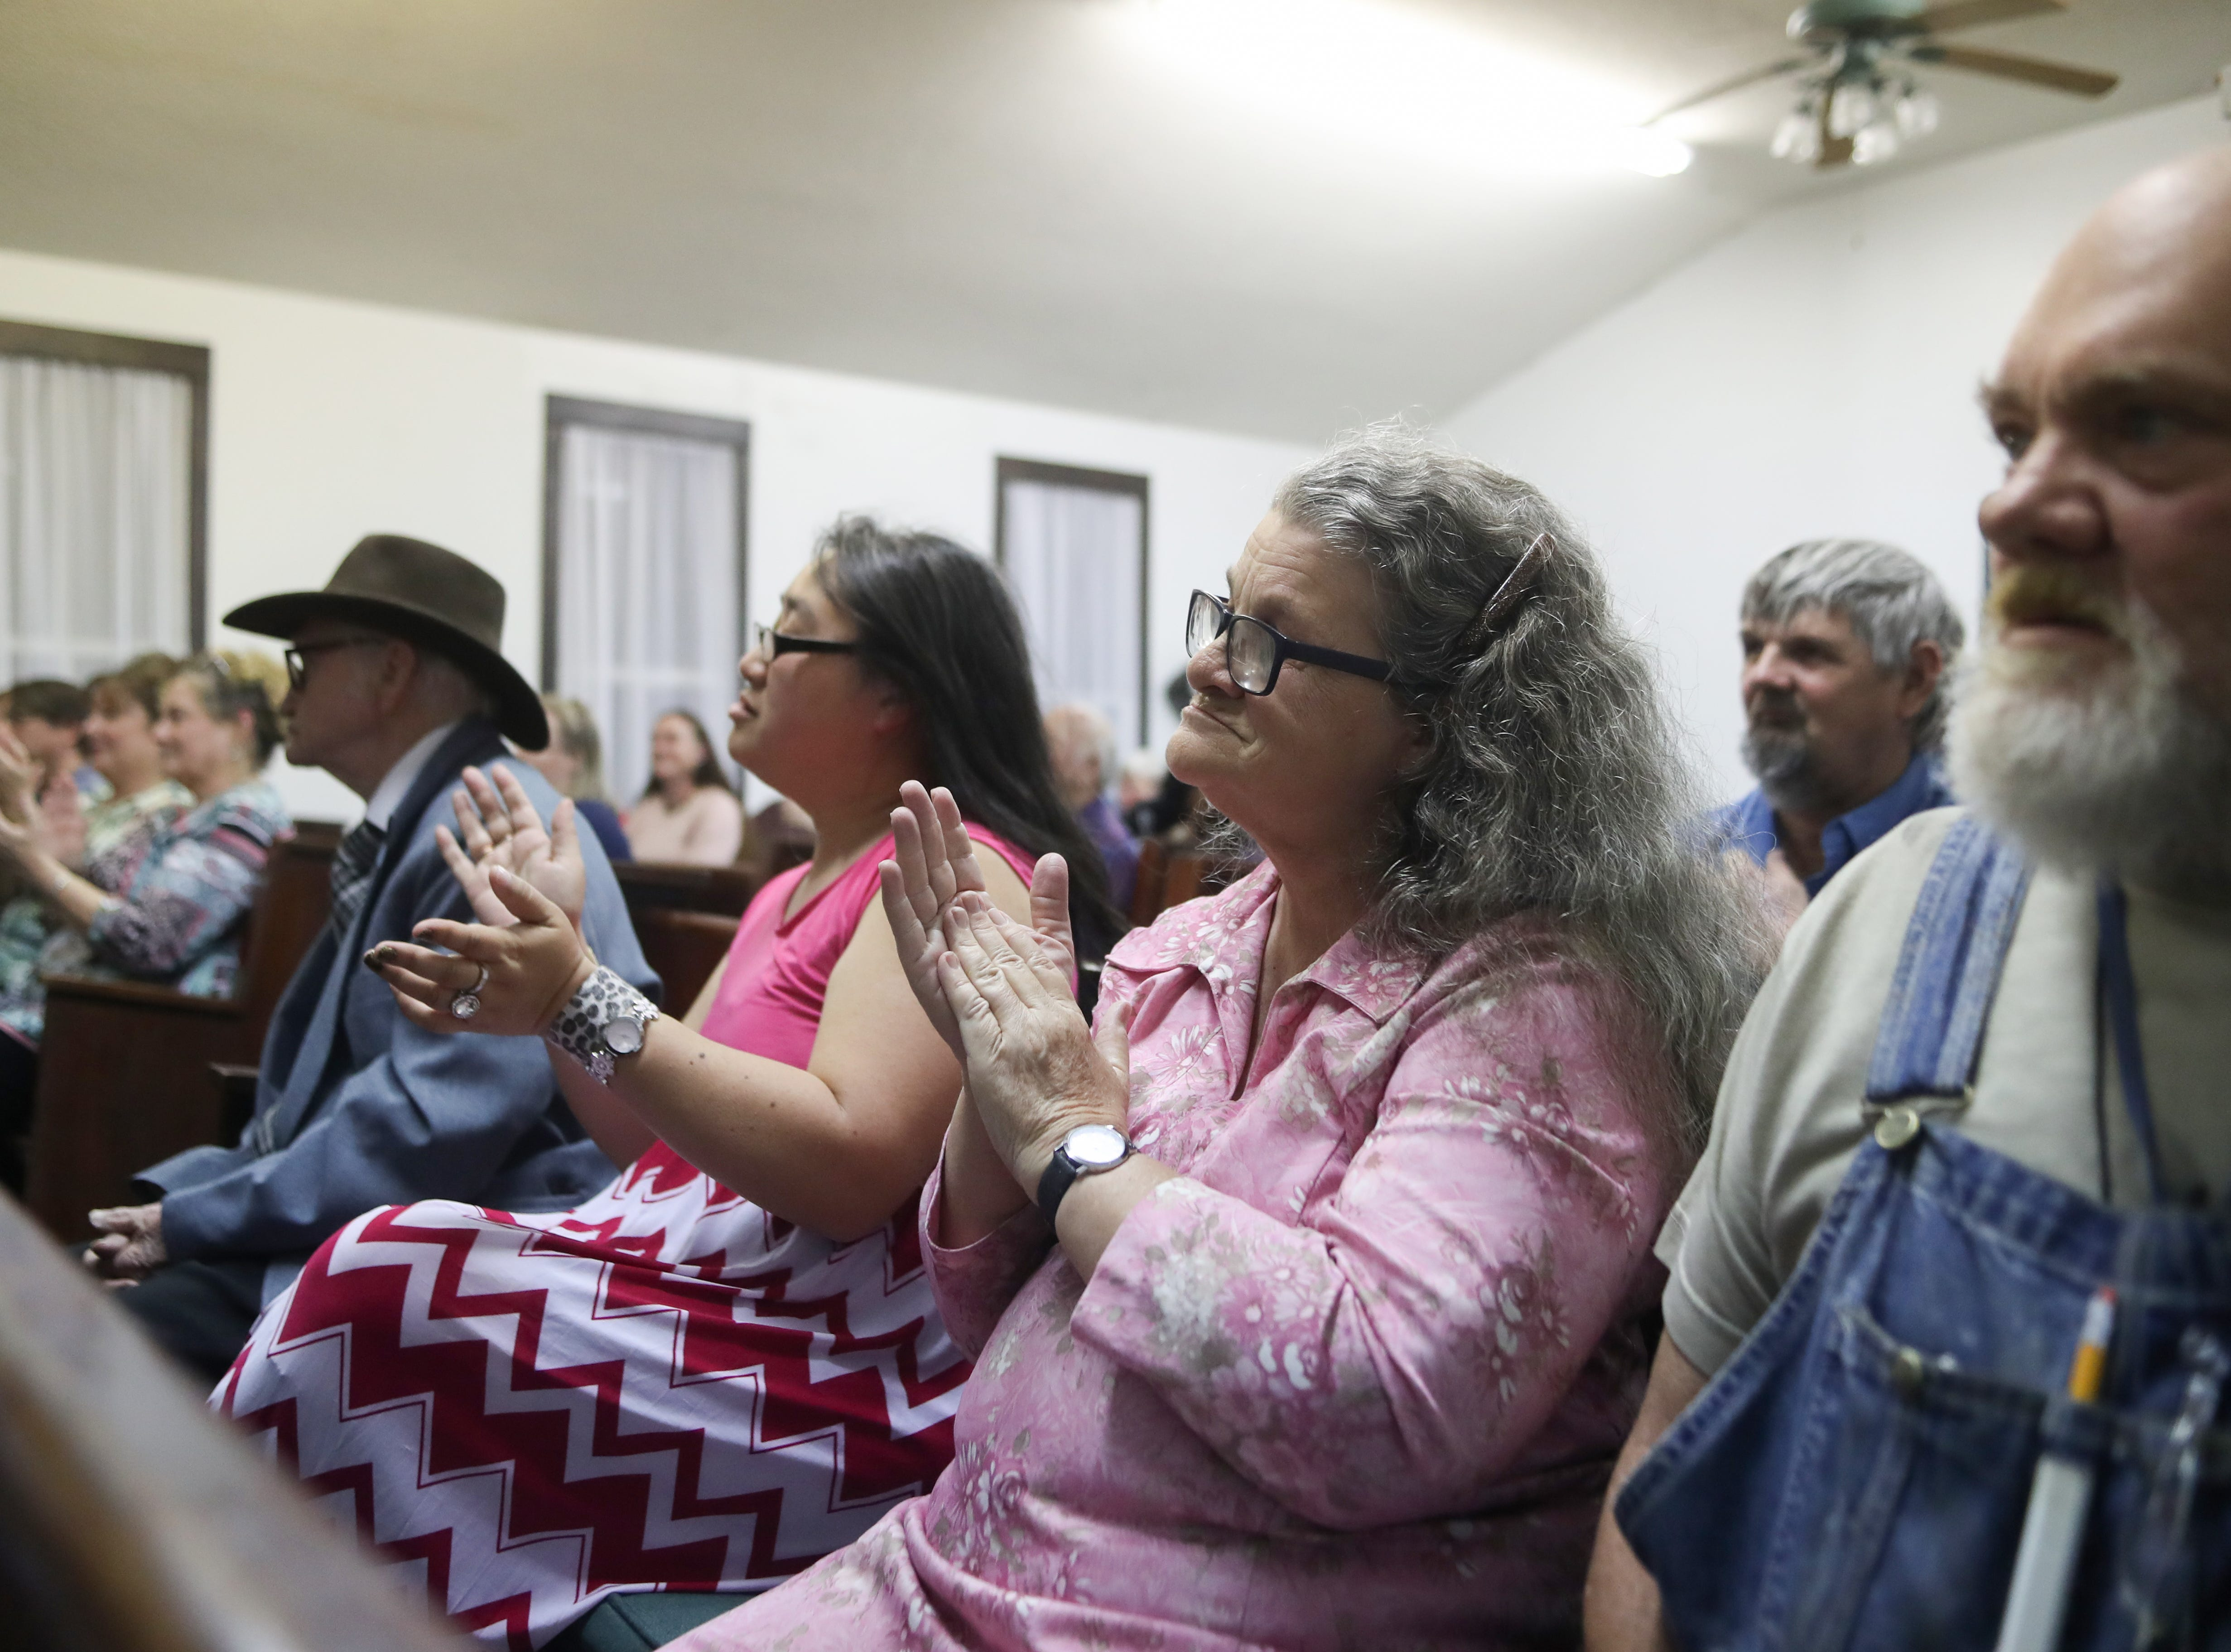 Members of the Ole Gospel Tabernacle Church clap along to the music during the last gospel sing service at Ole Gospel Tabernacle Church Friday, March 8, 2019.